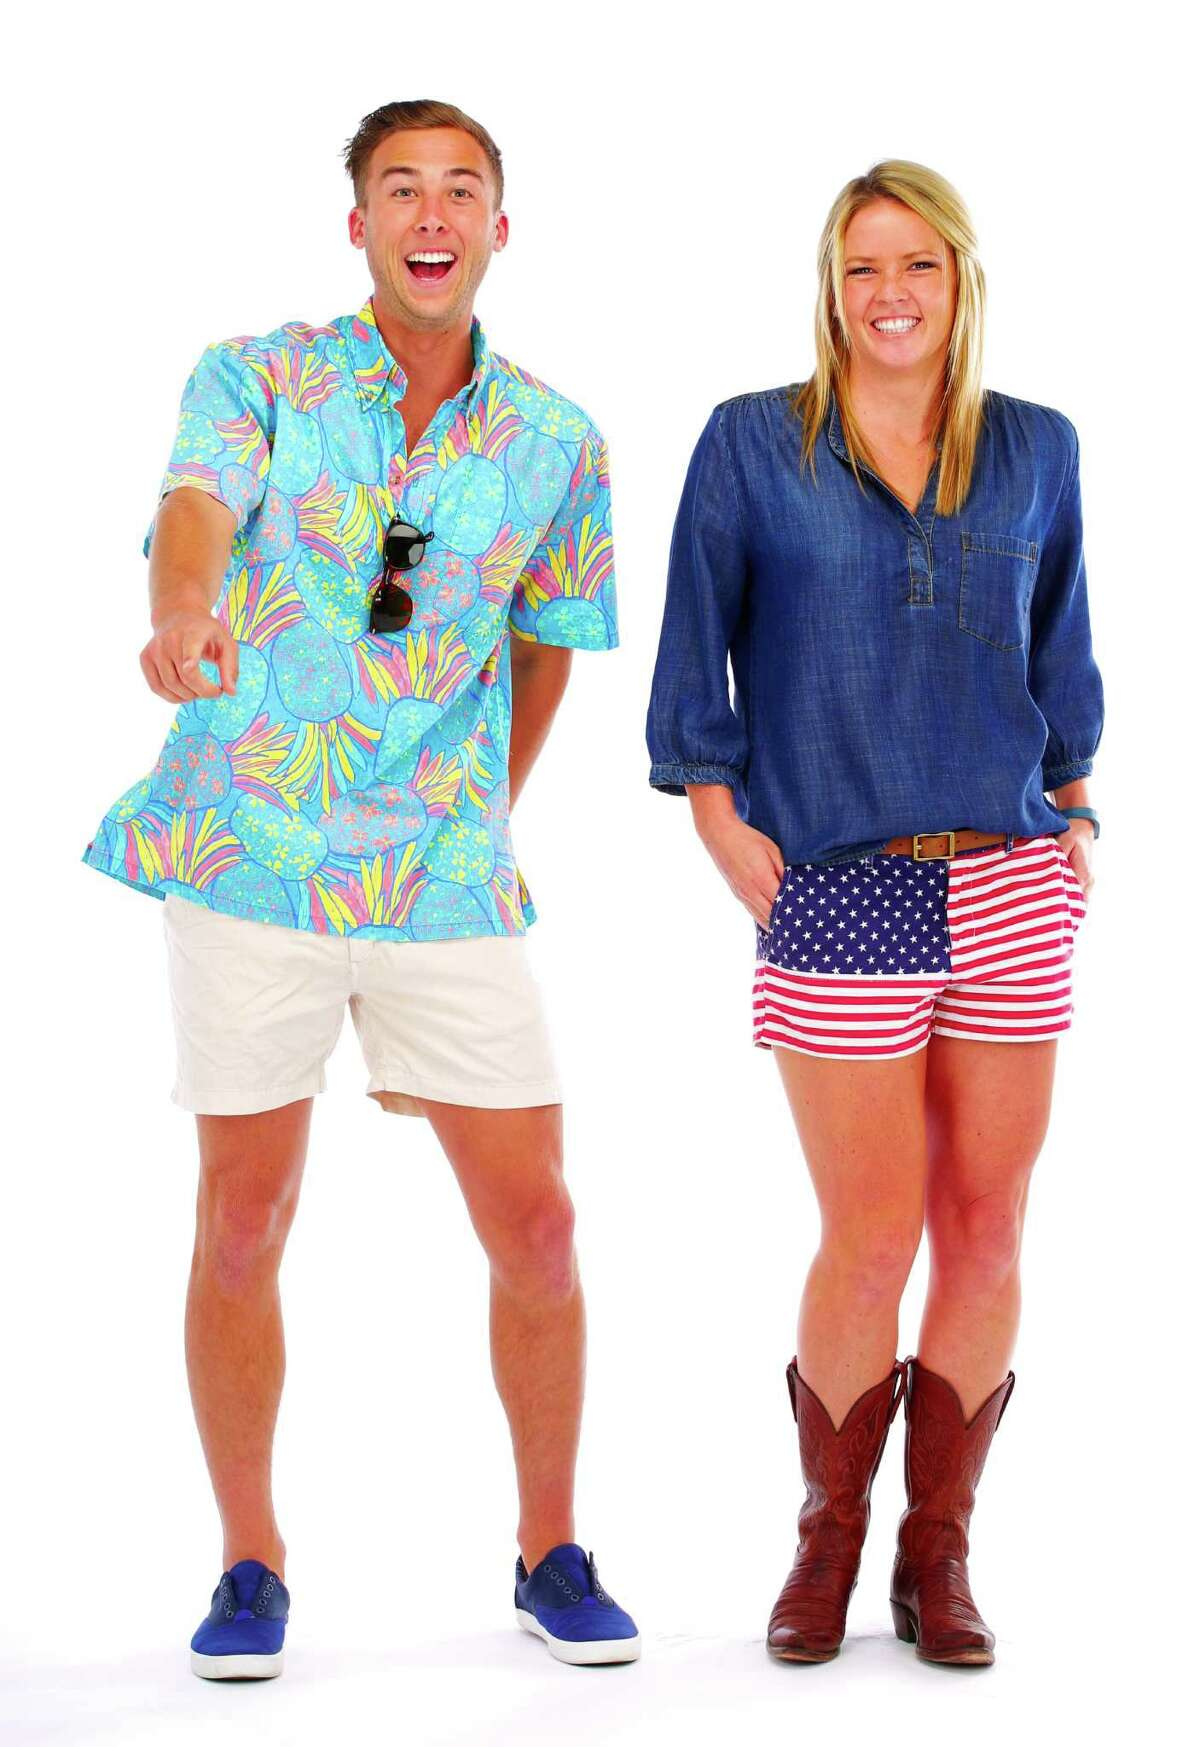 Auzy Freed and Lauren Haugh in Chubbies: She wears Custom Chubbies women's shorts, Anthropologie Elevenses chambray shirt, Lucche cowboy boots bought in Austin, Texas. He wears Nutter Hawaiian shirt from Chubbies (in pre-sale and available spring 2015); Khakmeister Chubbies shorts, Hillsboro shoes from Jack Threads, Breda Watch, *Persol Sunglasses.